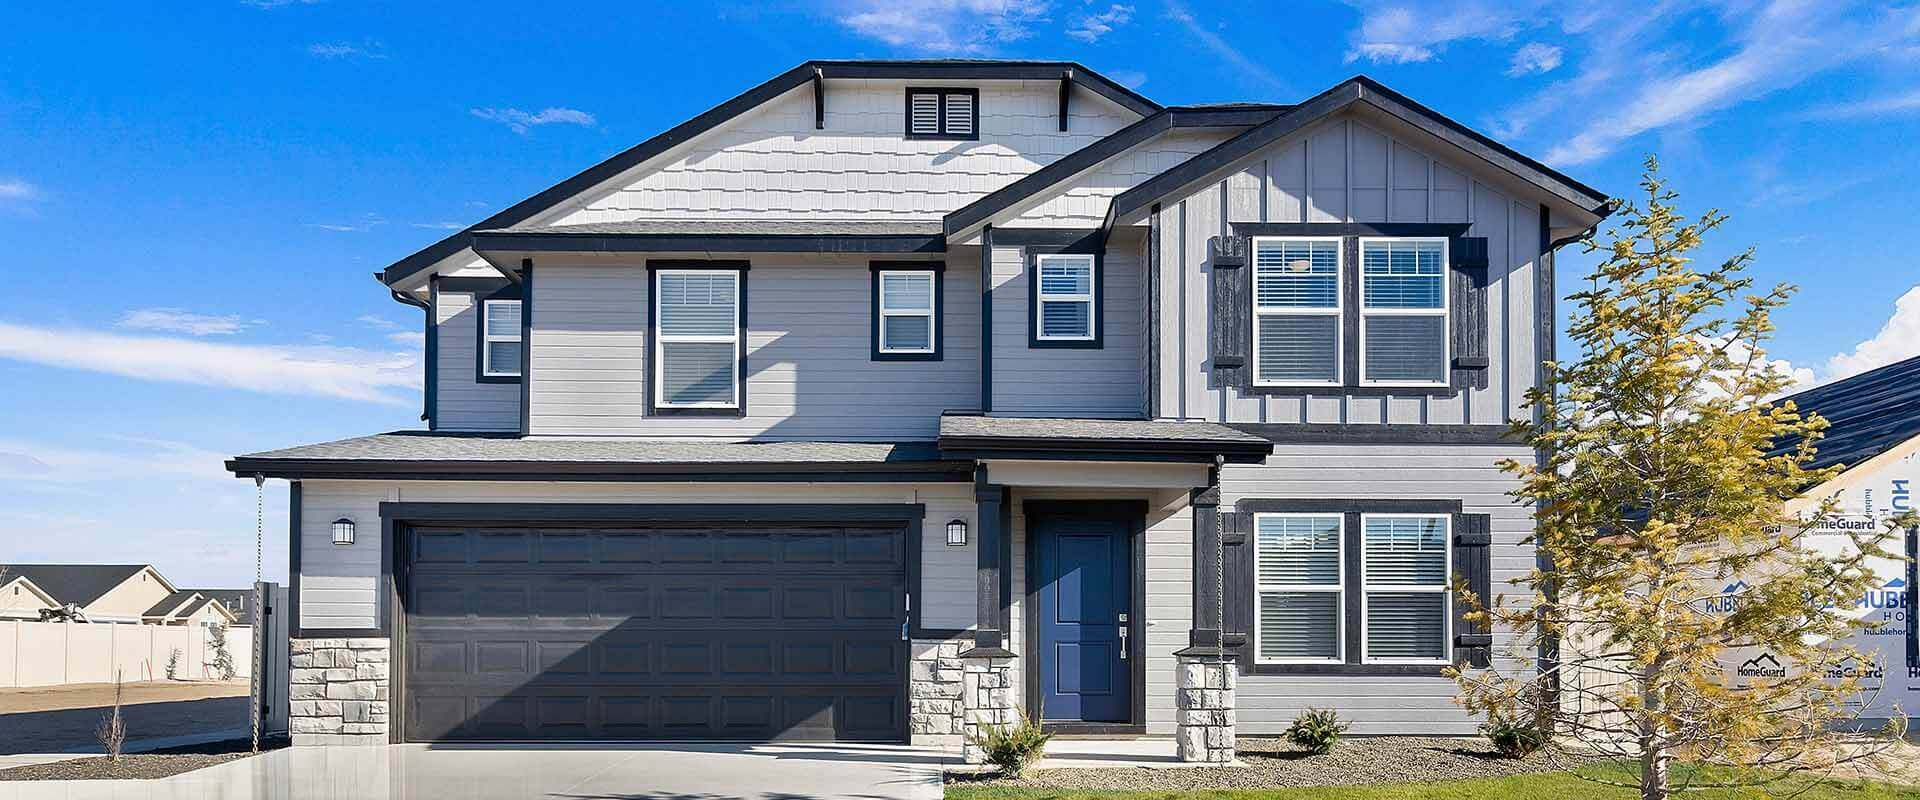 Hubble Homes Spruce Model Exterior 1920x8001.jpg